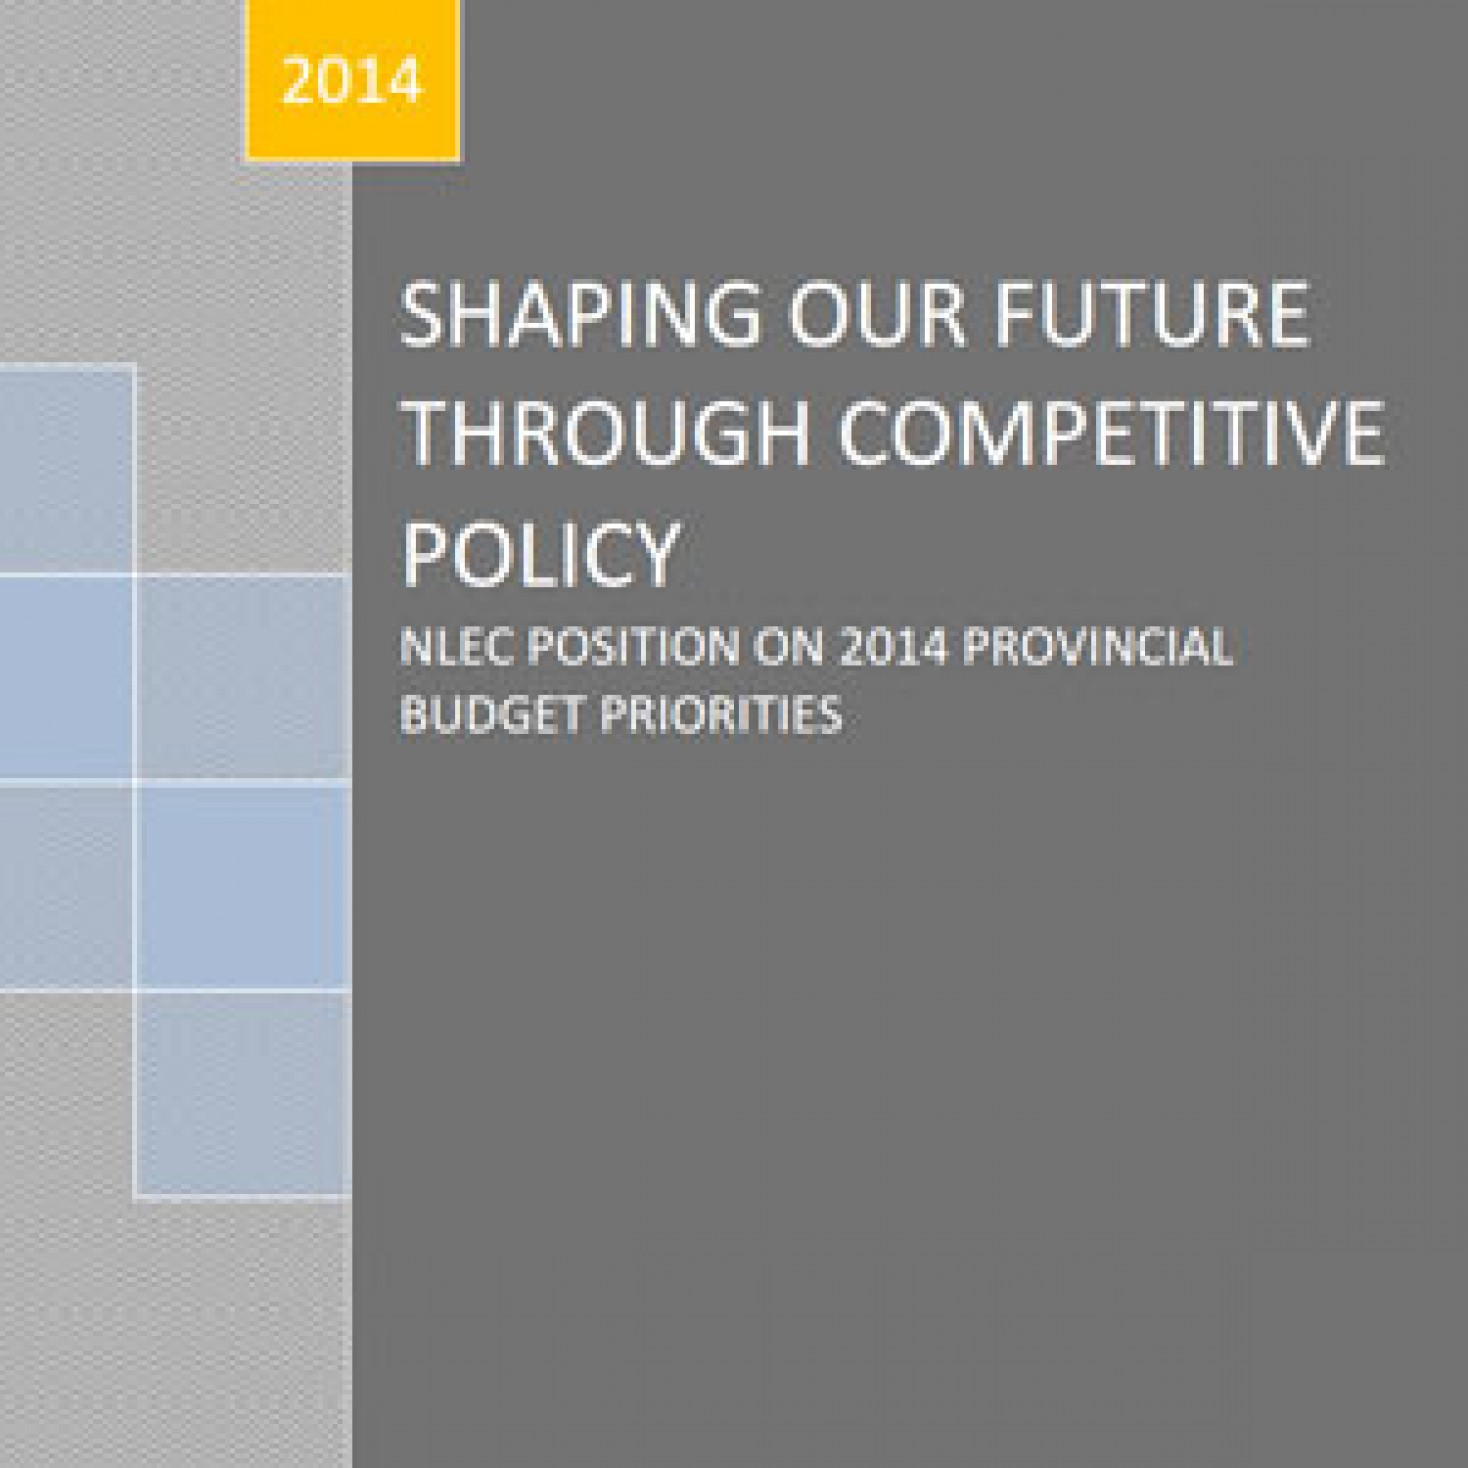 Shaping our Future through Competitive Policy – NLEC position on 2014 Provincial Budget Priorities